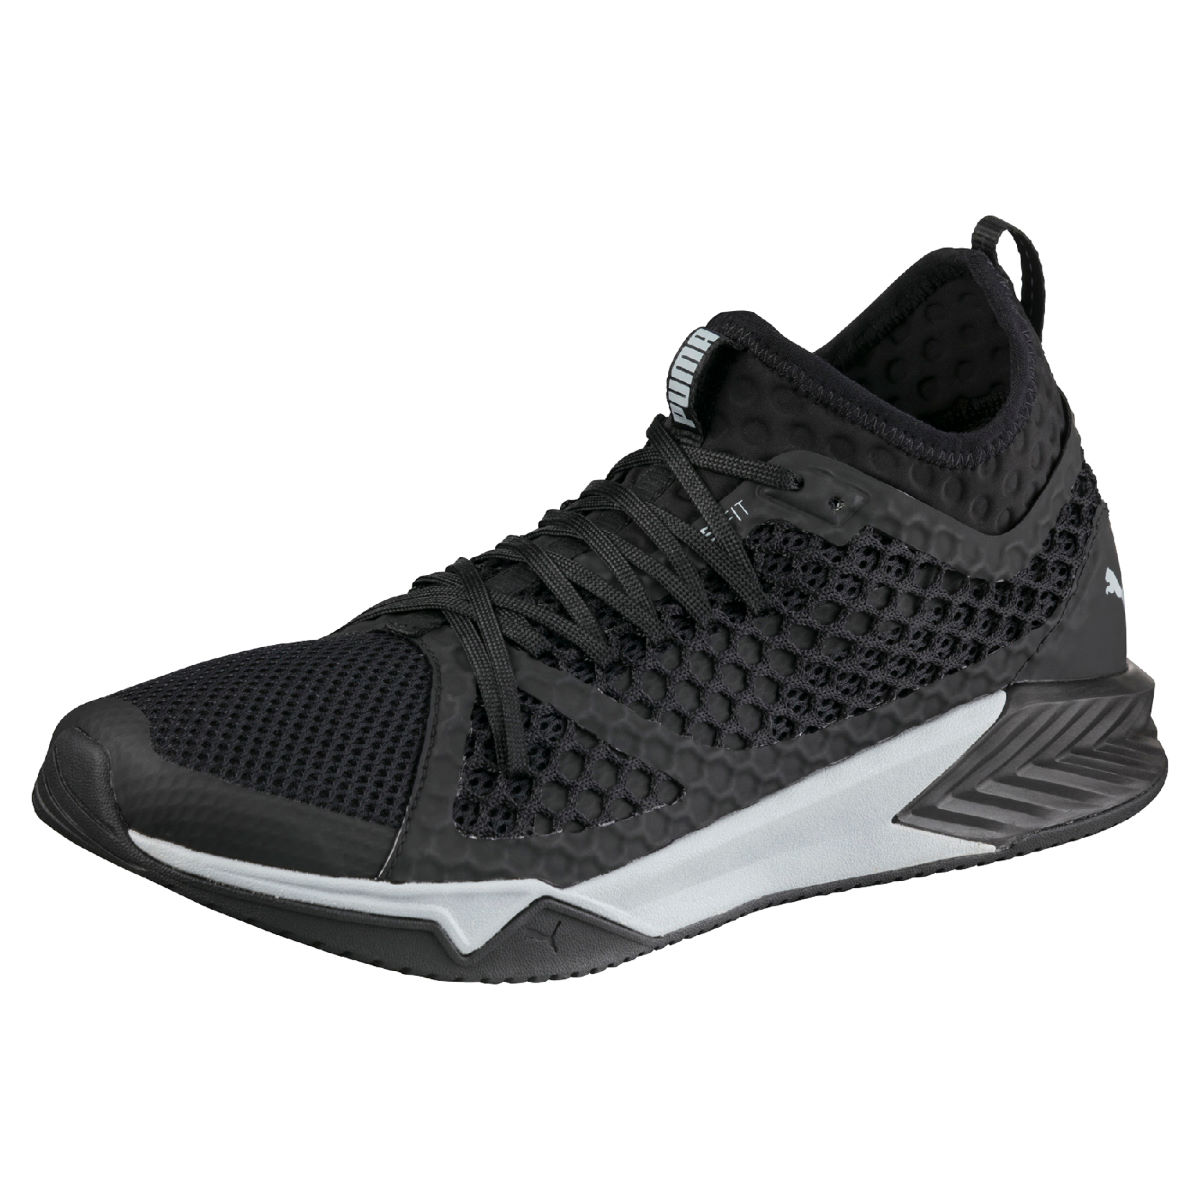 Puma Ignite XT Netfit Shoes - 8 Black | Training Running Shoes